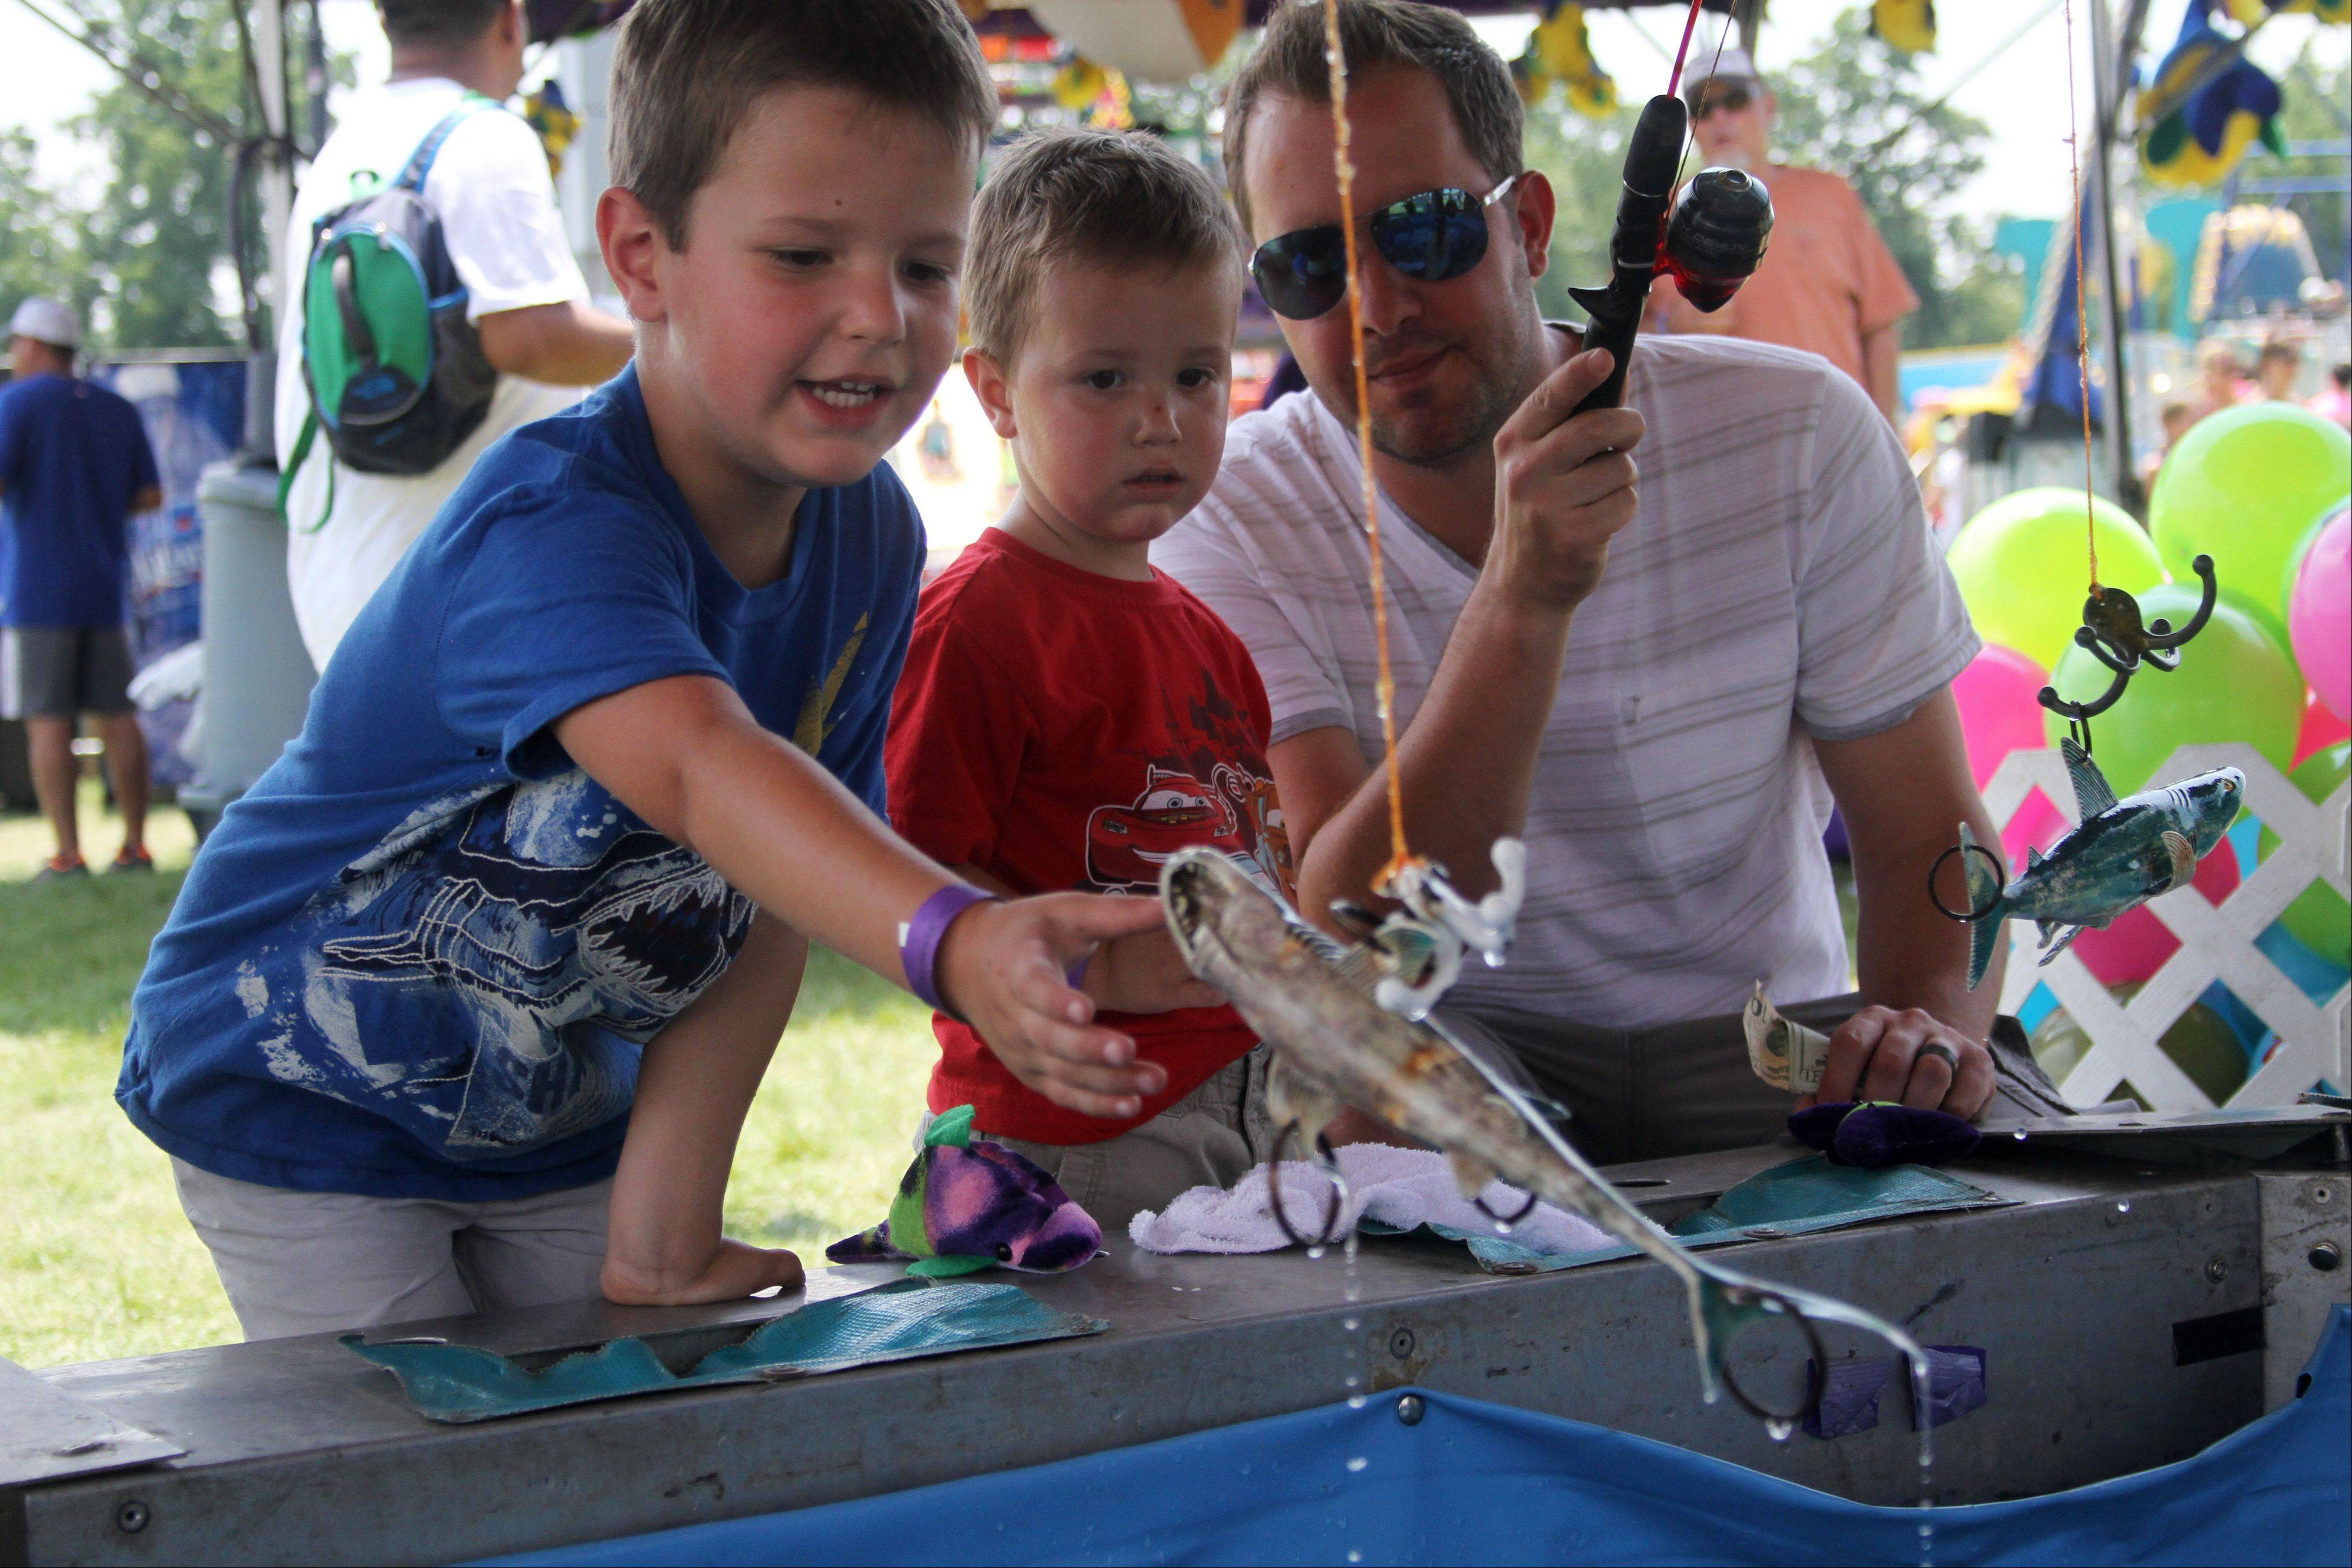 Blake Sweda, 5, left, claims the shark his mother helped him catch at the fishing game while his younger brother Tyler, 3,center, and father, Marc, watch him at the Naperville Exchange Club's 26th annual Ribfest .